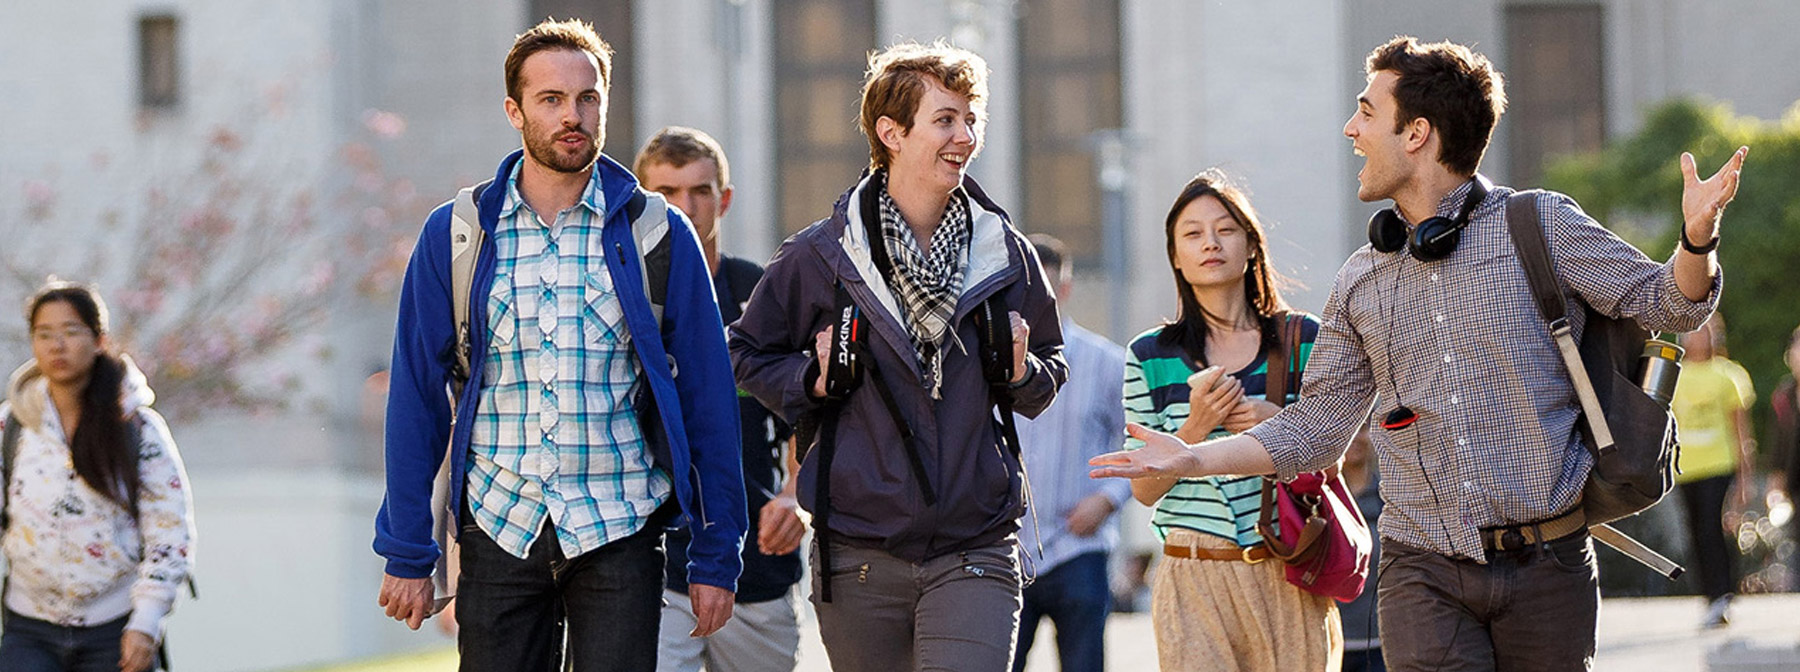 Students walking through the hilltop campus